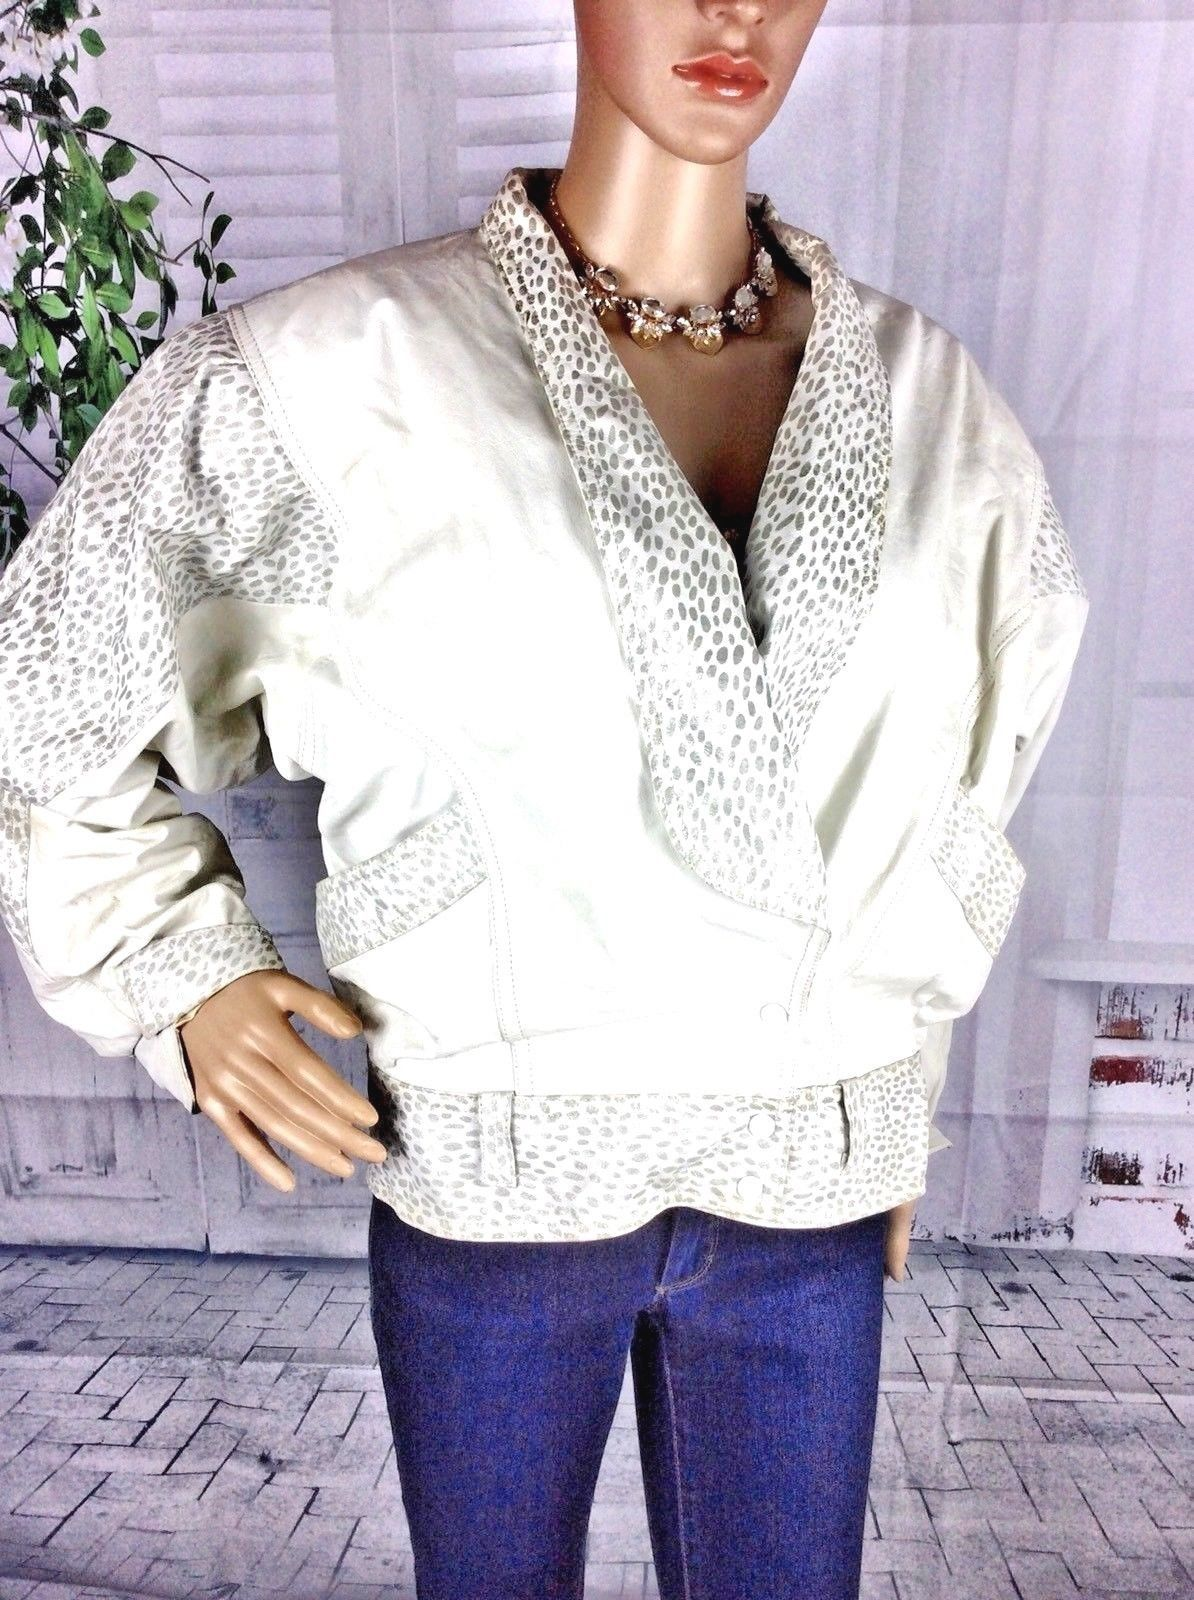 Vtg Women S Pelle Cuir Leather Ivory White Gray Animal Print Crop Bomber Snap Jacket Medium 8 10 By Stylishiddentreasure On Ets Fashion Women Trending Outfits [ 1600 x 1194 Pixel ]